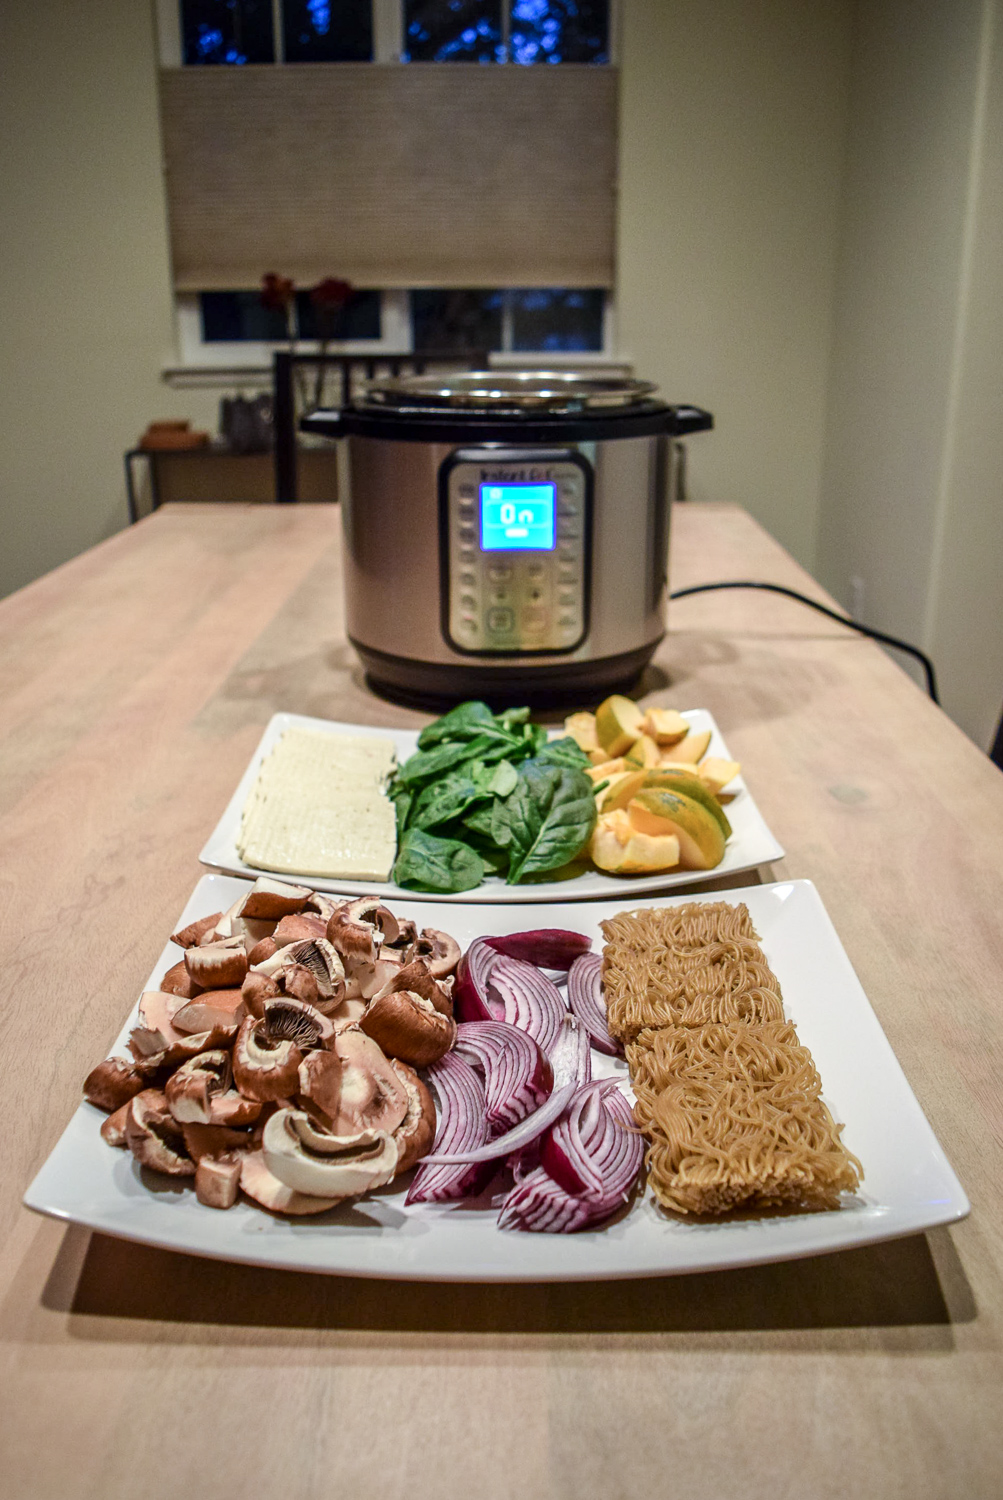 Instant Pot Hot Pot with Vegetables, Tofu, and Ramen Noodles from angle